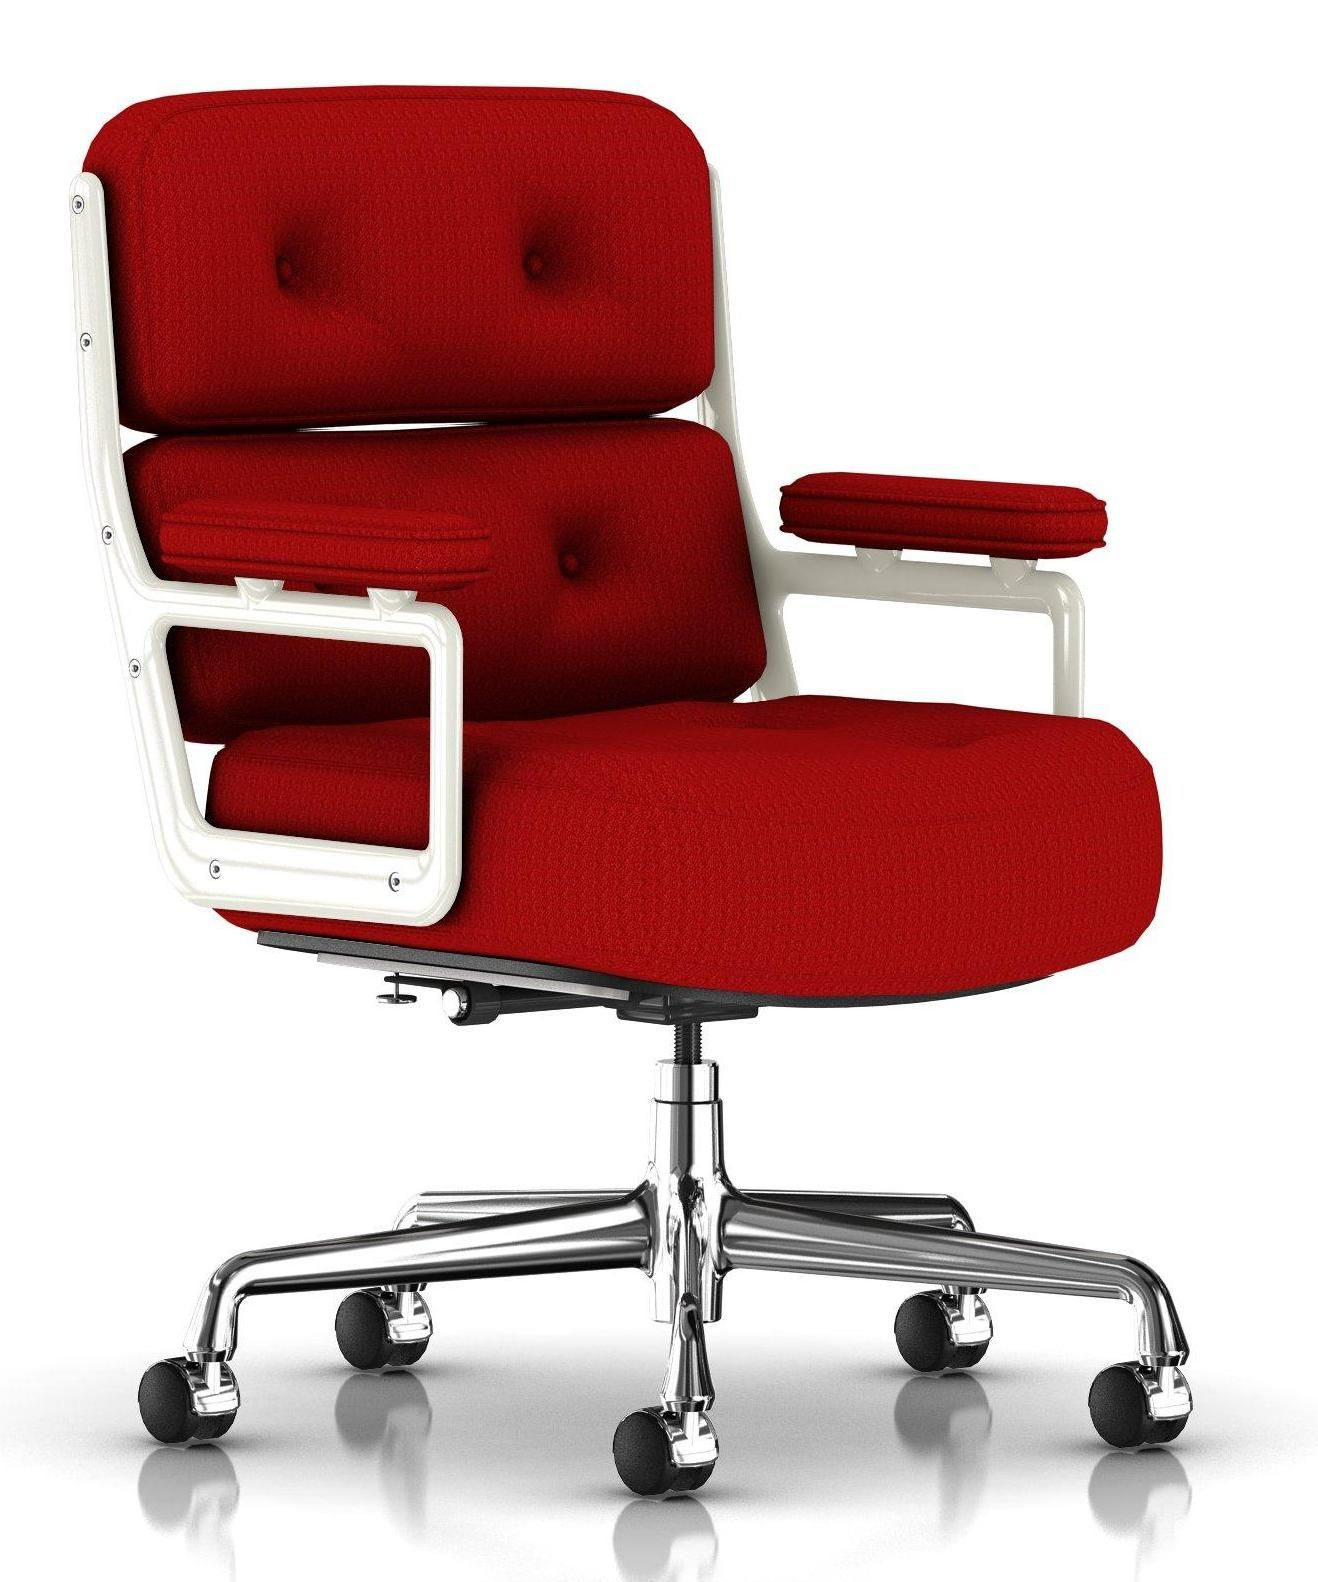 Eames executive chair red 249x300 the color of love perfectly sewn our take on valentines